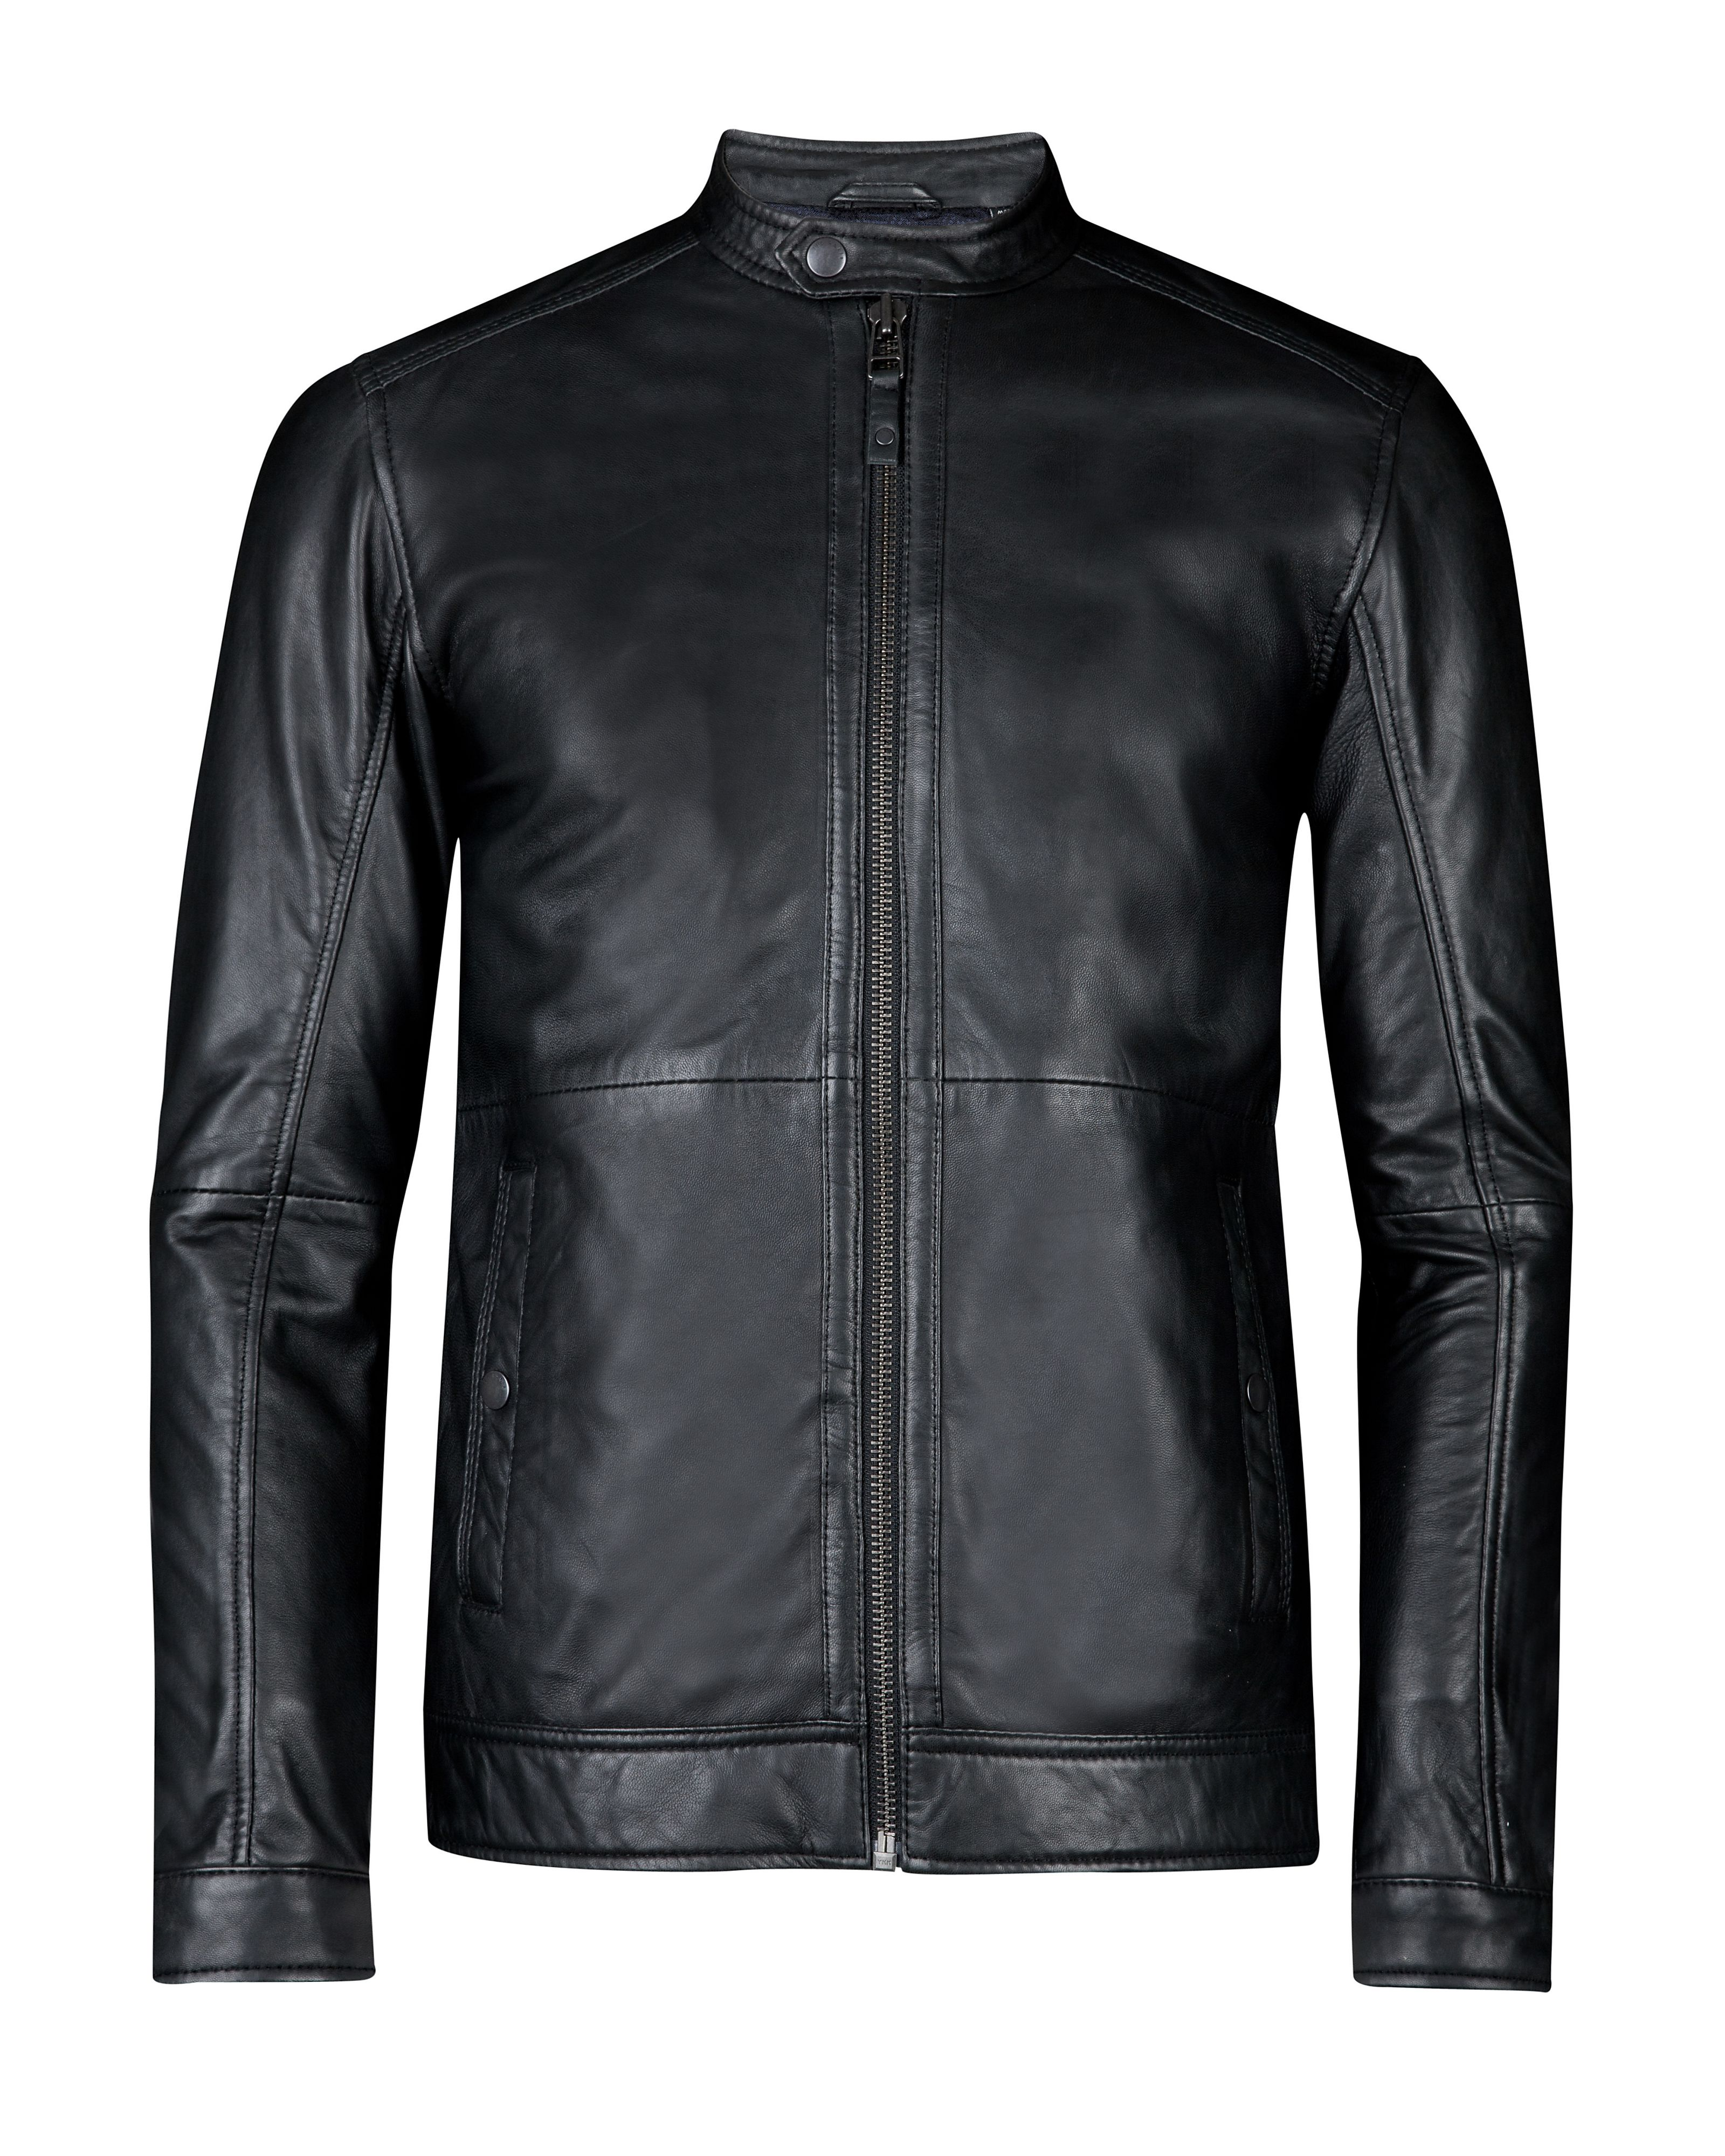 Barath leather jacket